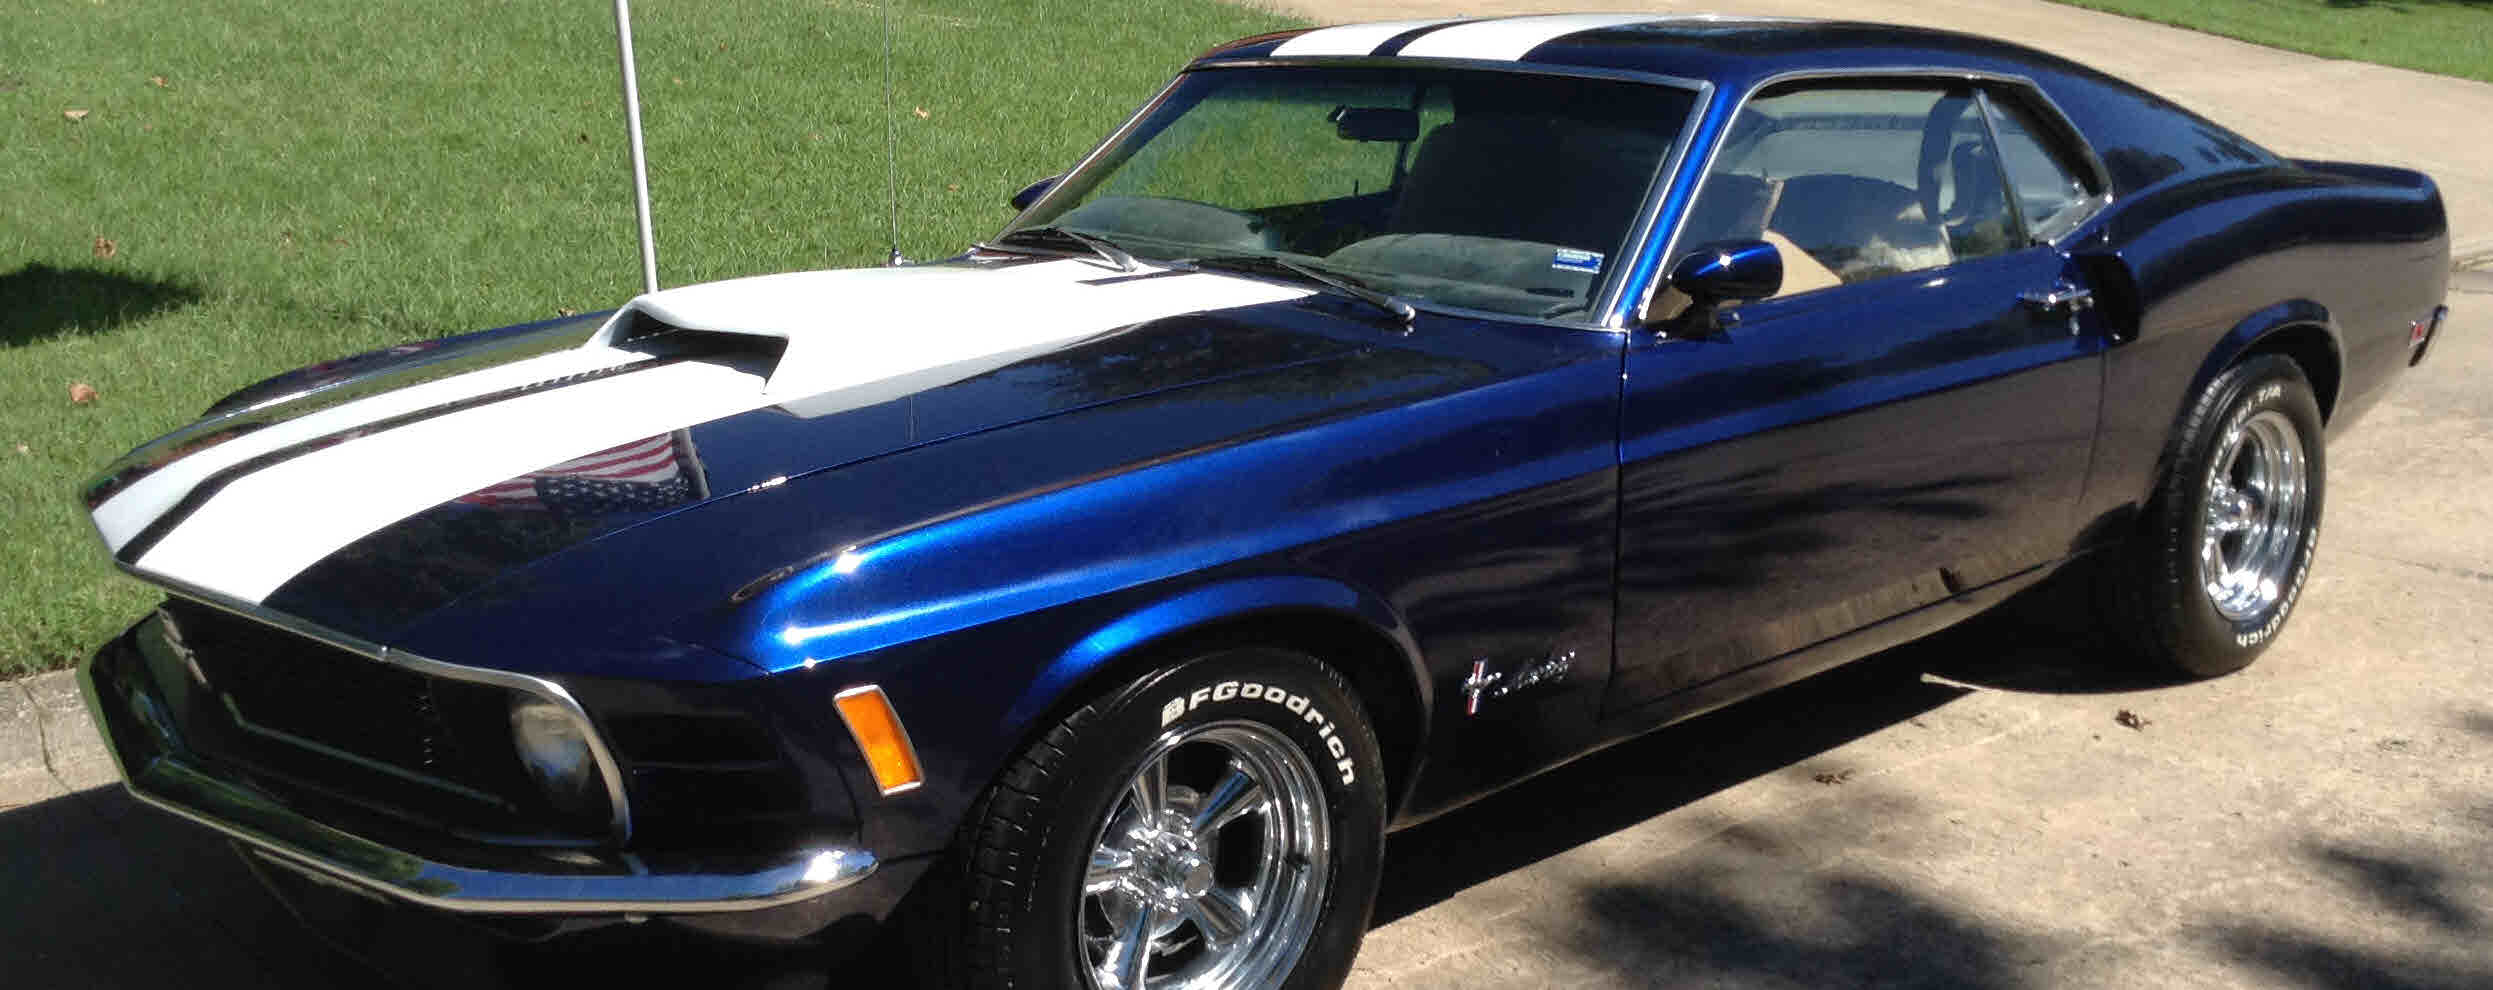 Loughmiller Motors 1970 Ford Mustang 302 Belt Diagram Gt Dark Sapphire Blue V 8 351 Modified 2 Door Auto 3 Speed Sold